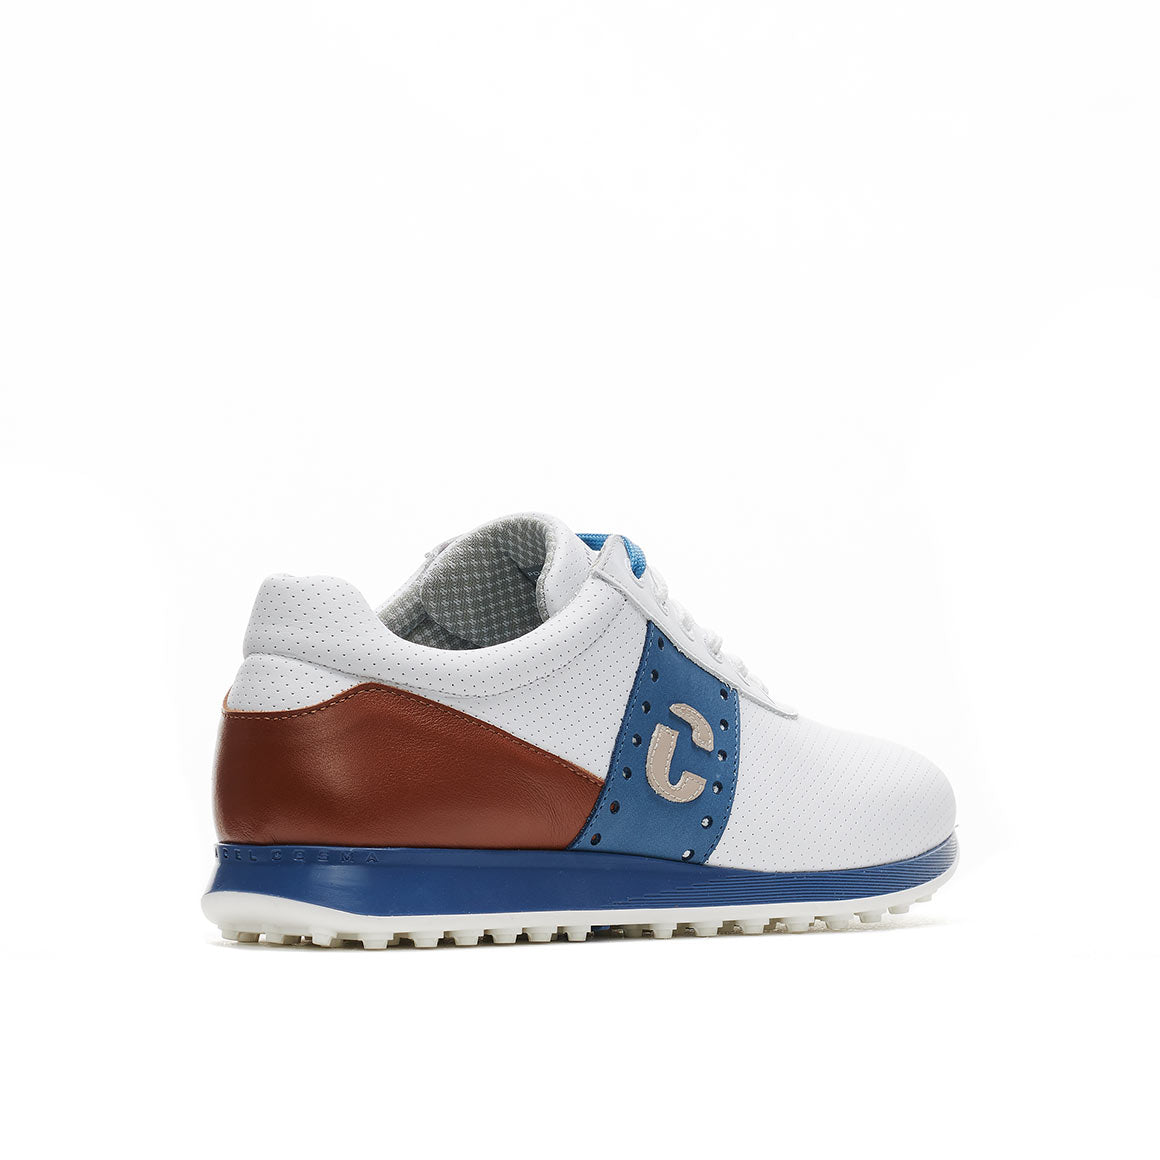 Men's Belair White / Cognac Golf Shoe